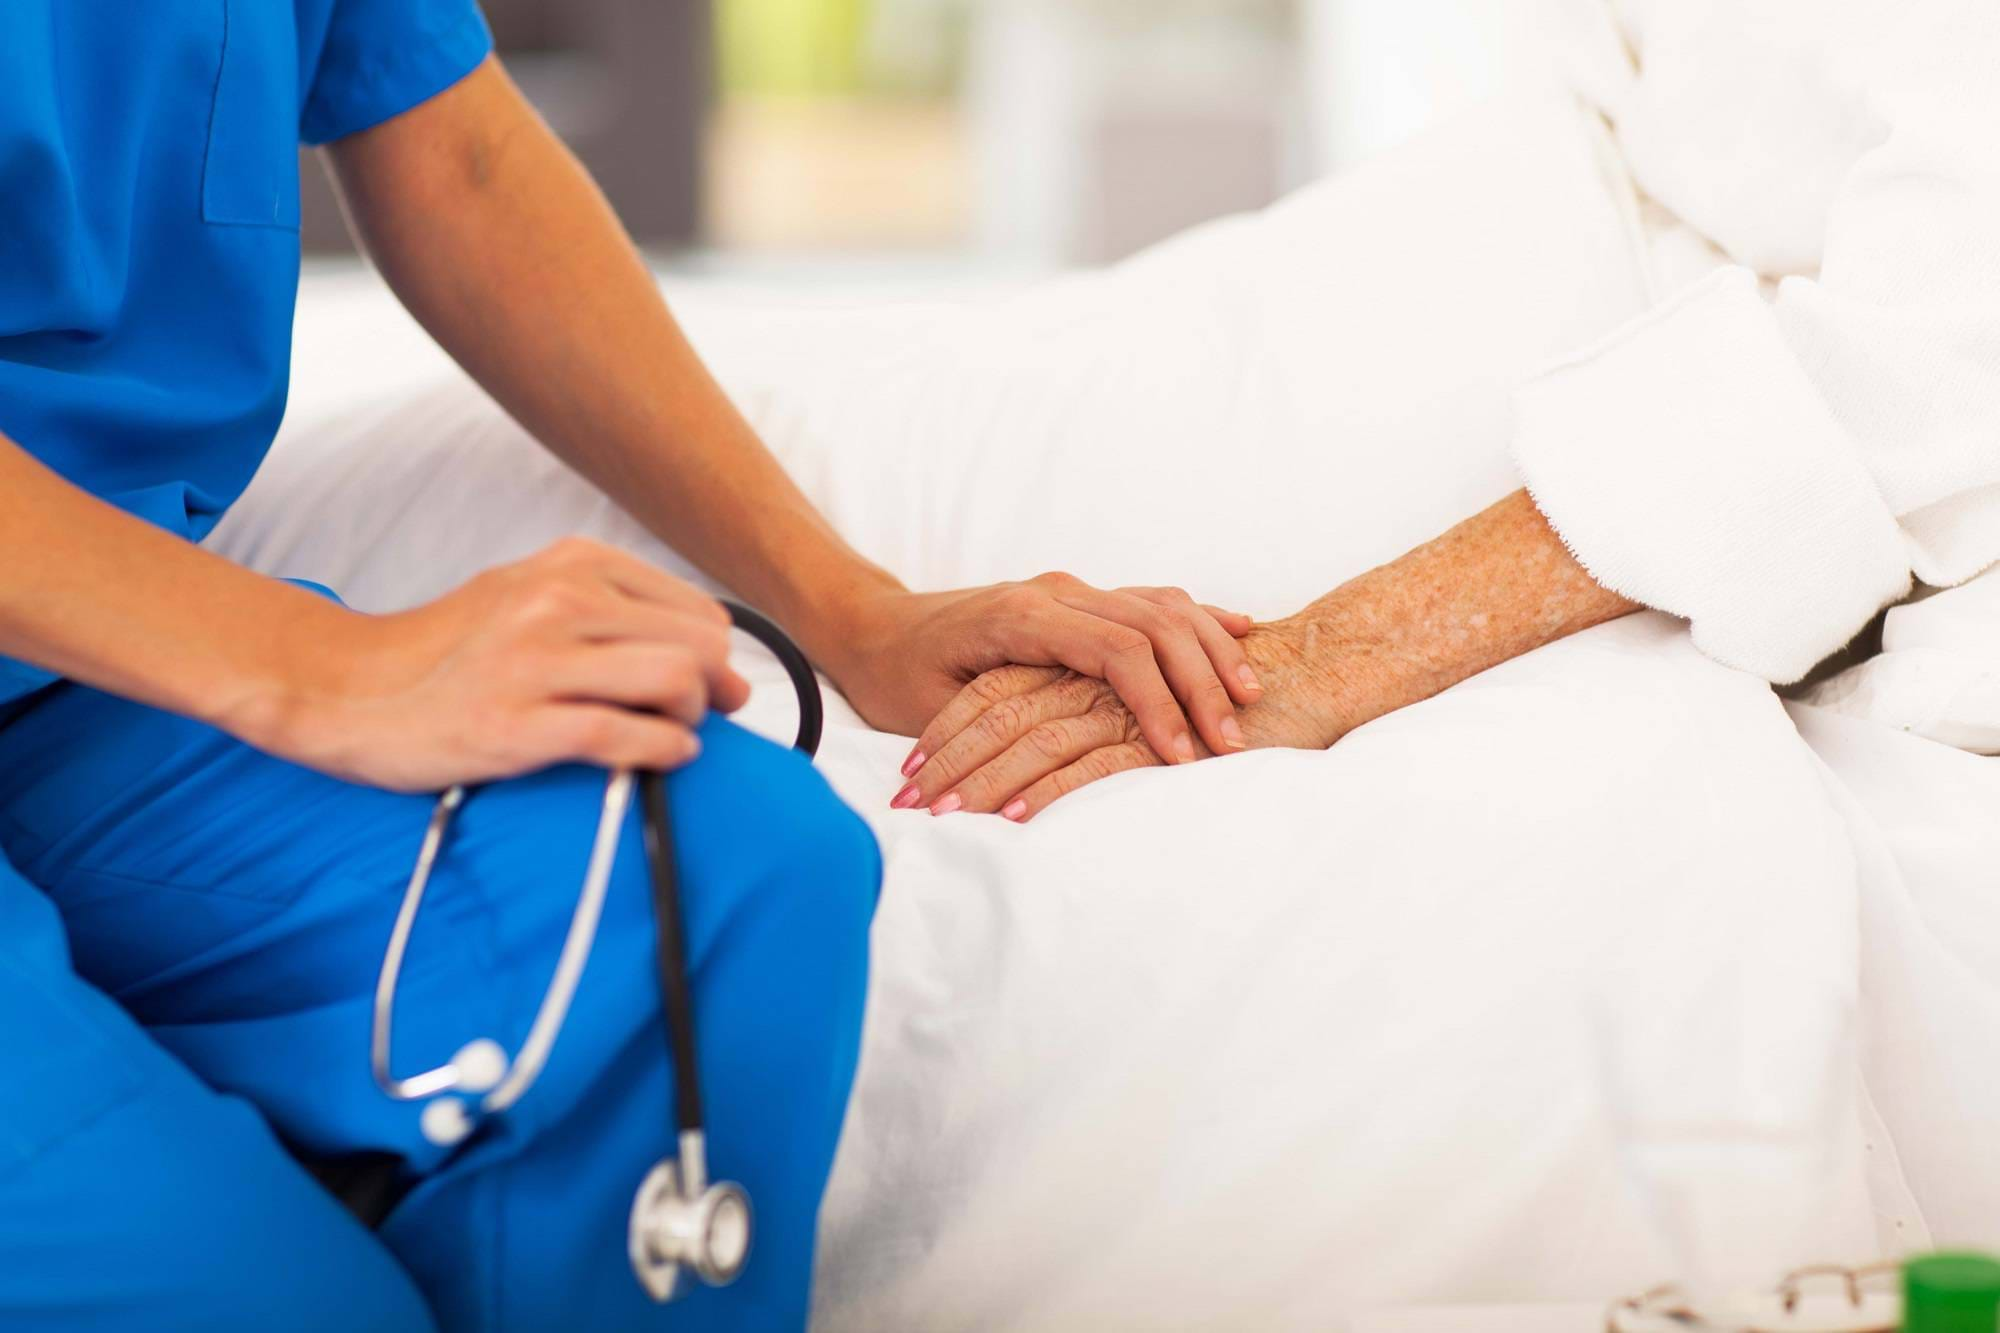 Find the Best Home Care Services in Boynton Beach and Plam Beach